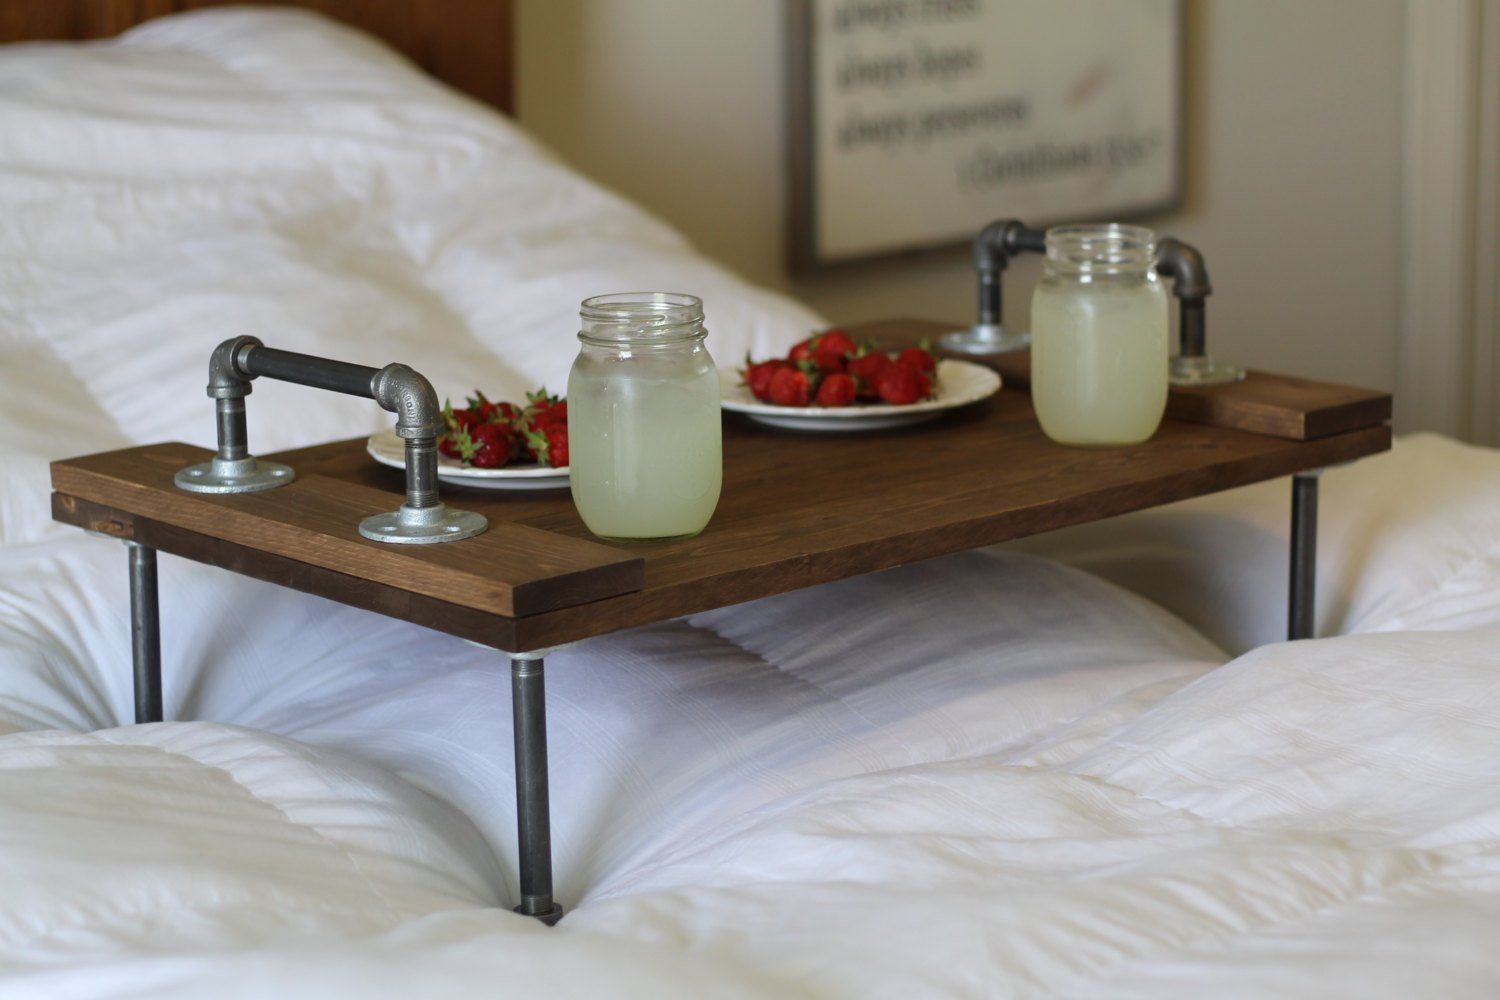 Furniture Rustic Industrial Diy Breakfast Over The Bed